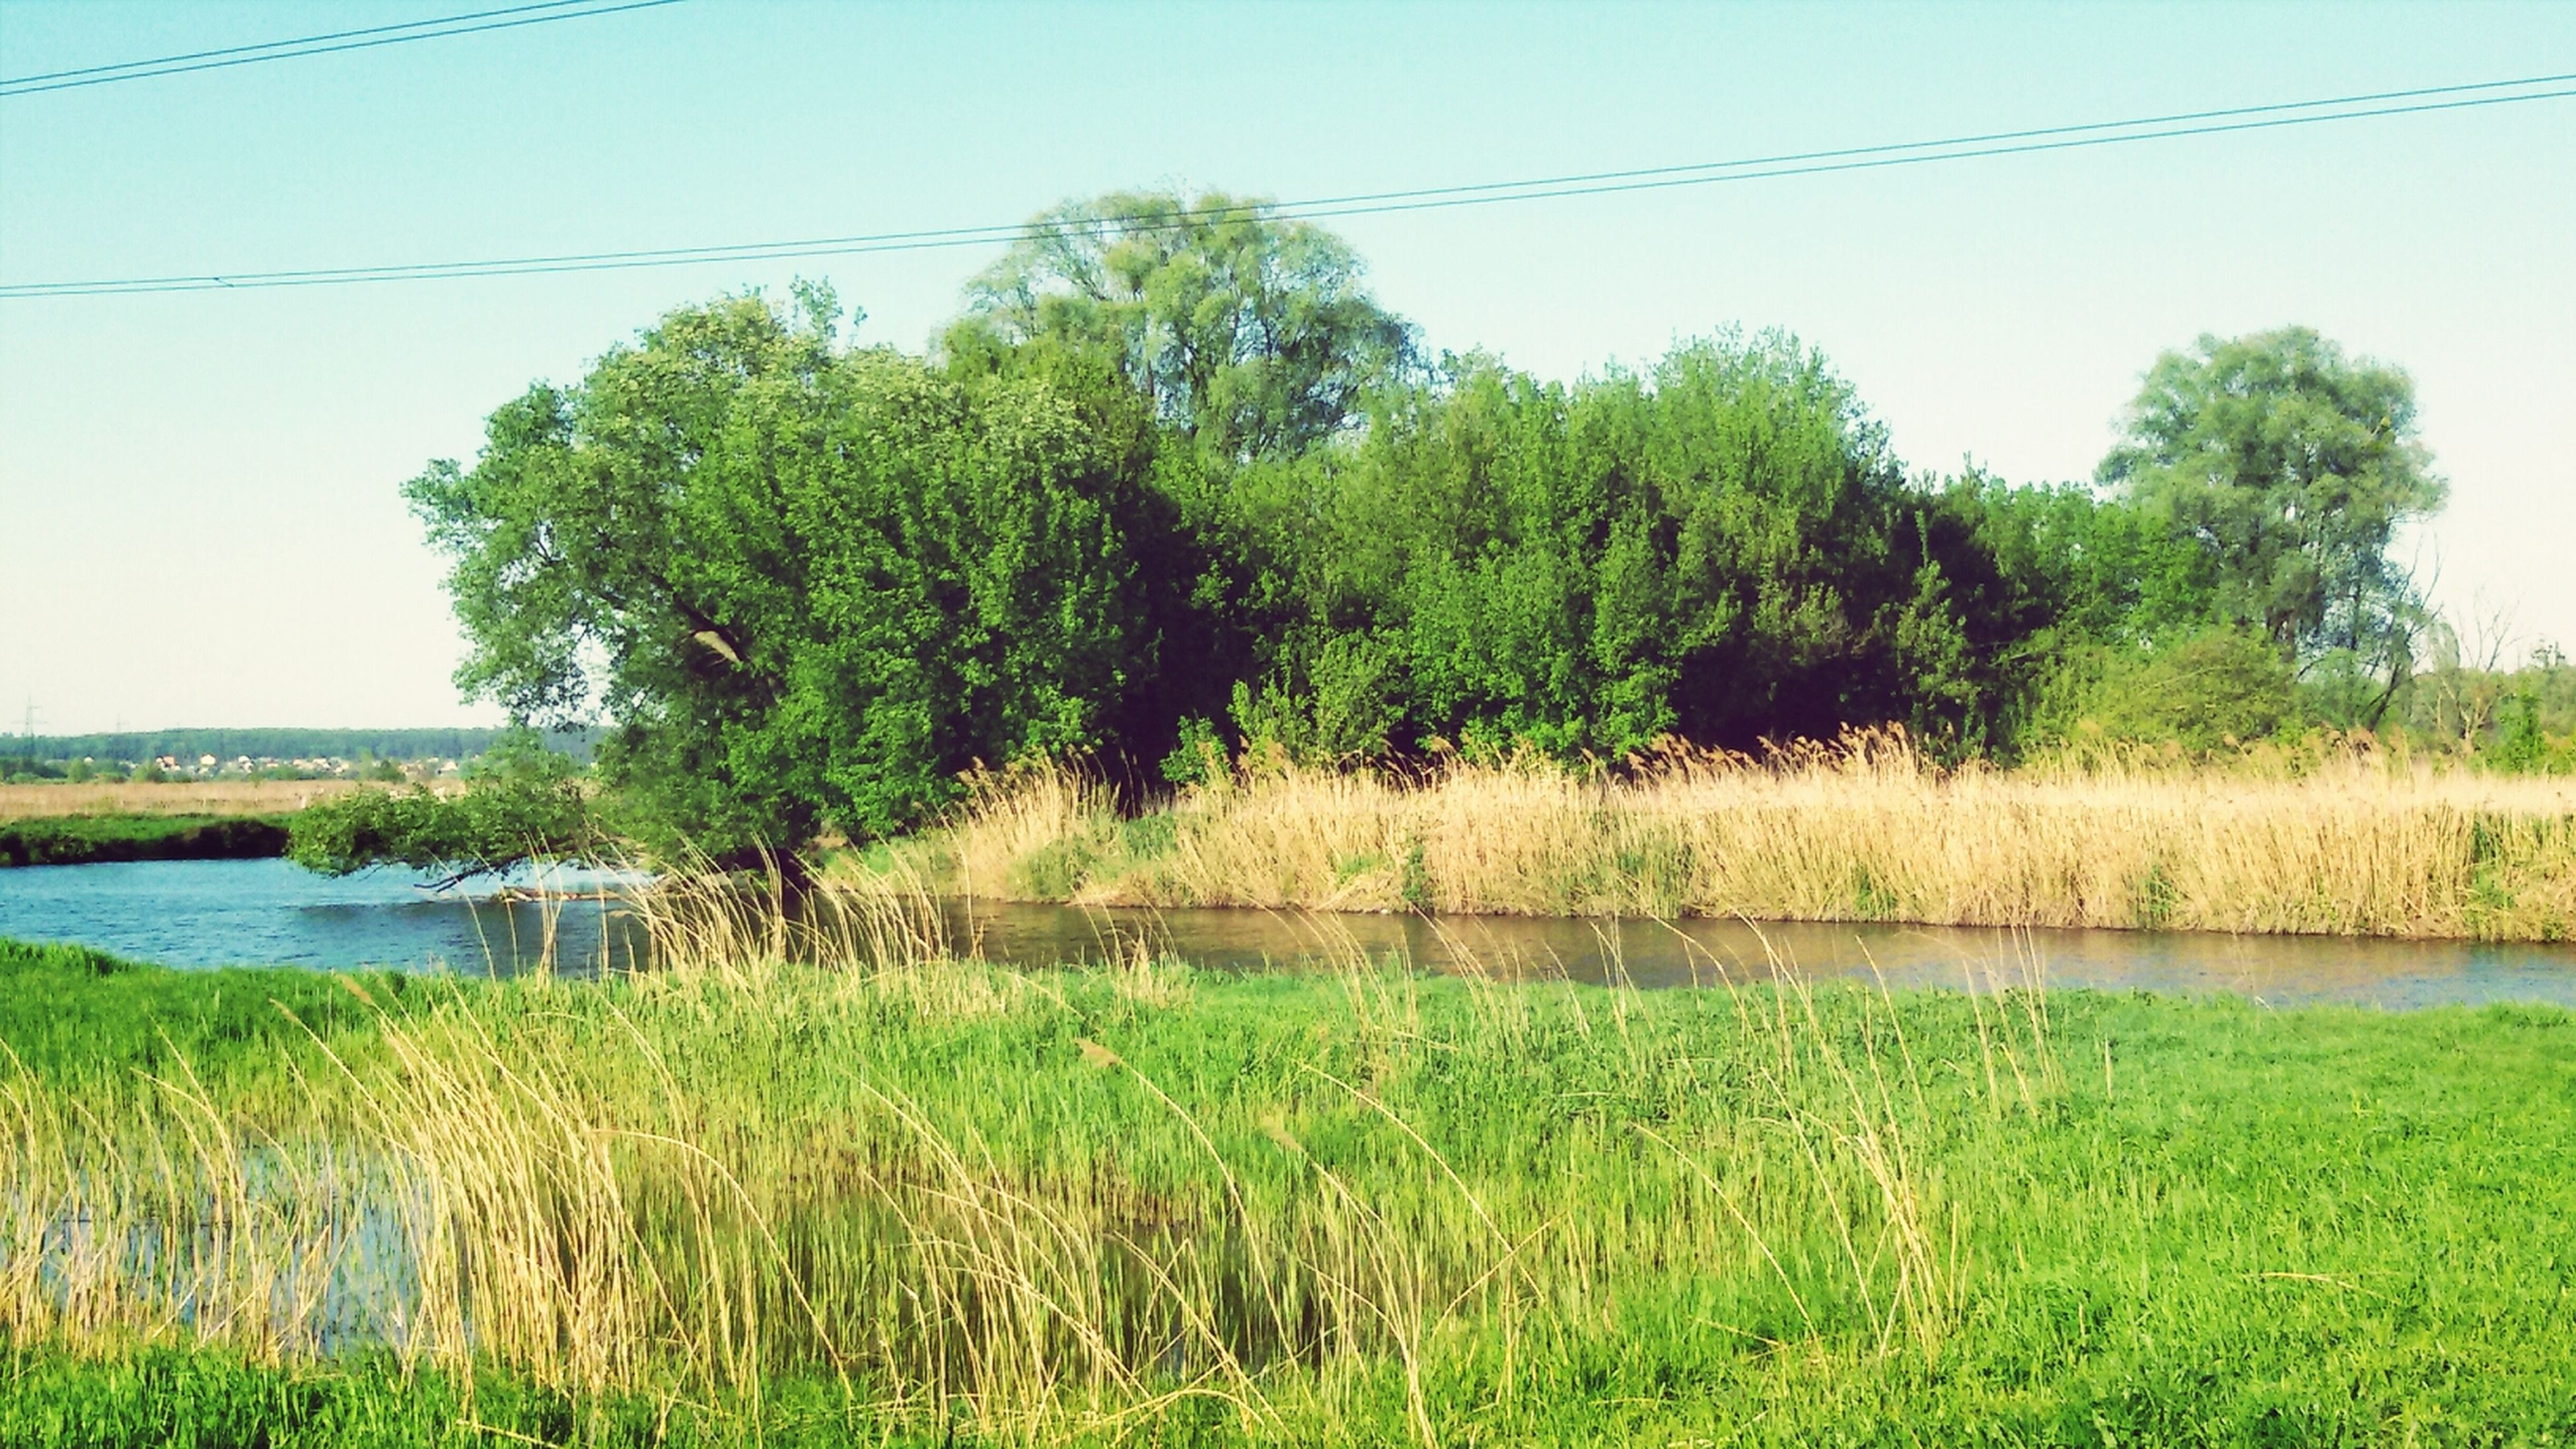 water, grass, clear sky, green color, tree, tranquility, tranquil scene, growth, lake, nature, beauty in nature, scenics, green, plant, river, field, reflection, landscape, day, countryside